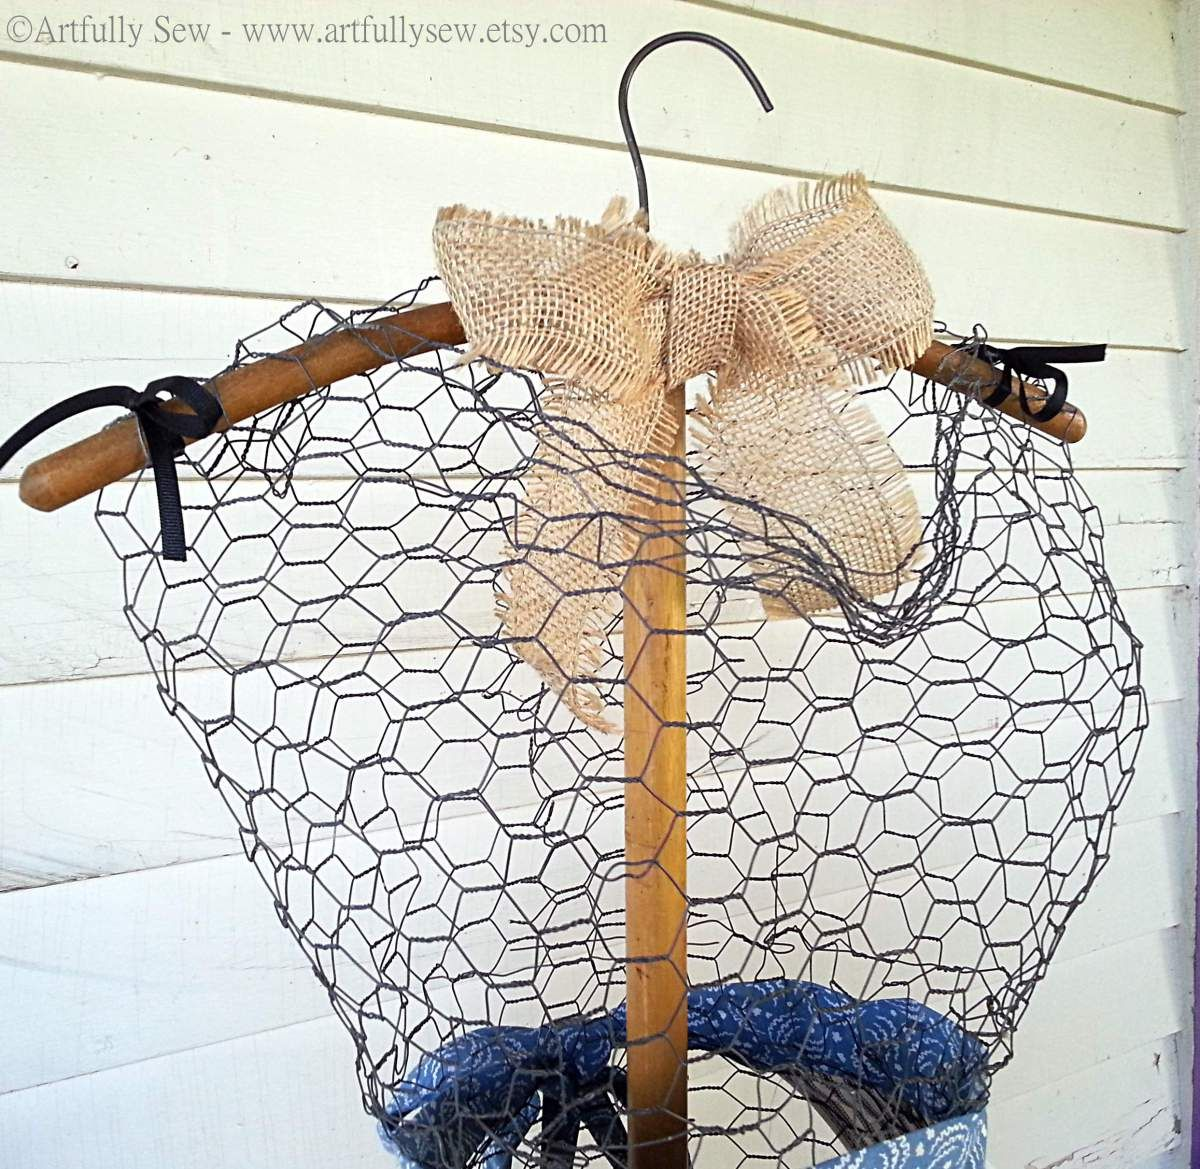 DIY Dress Form from Chicken Wire | Chicken wire, Dress form and Display